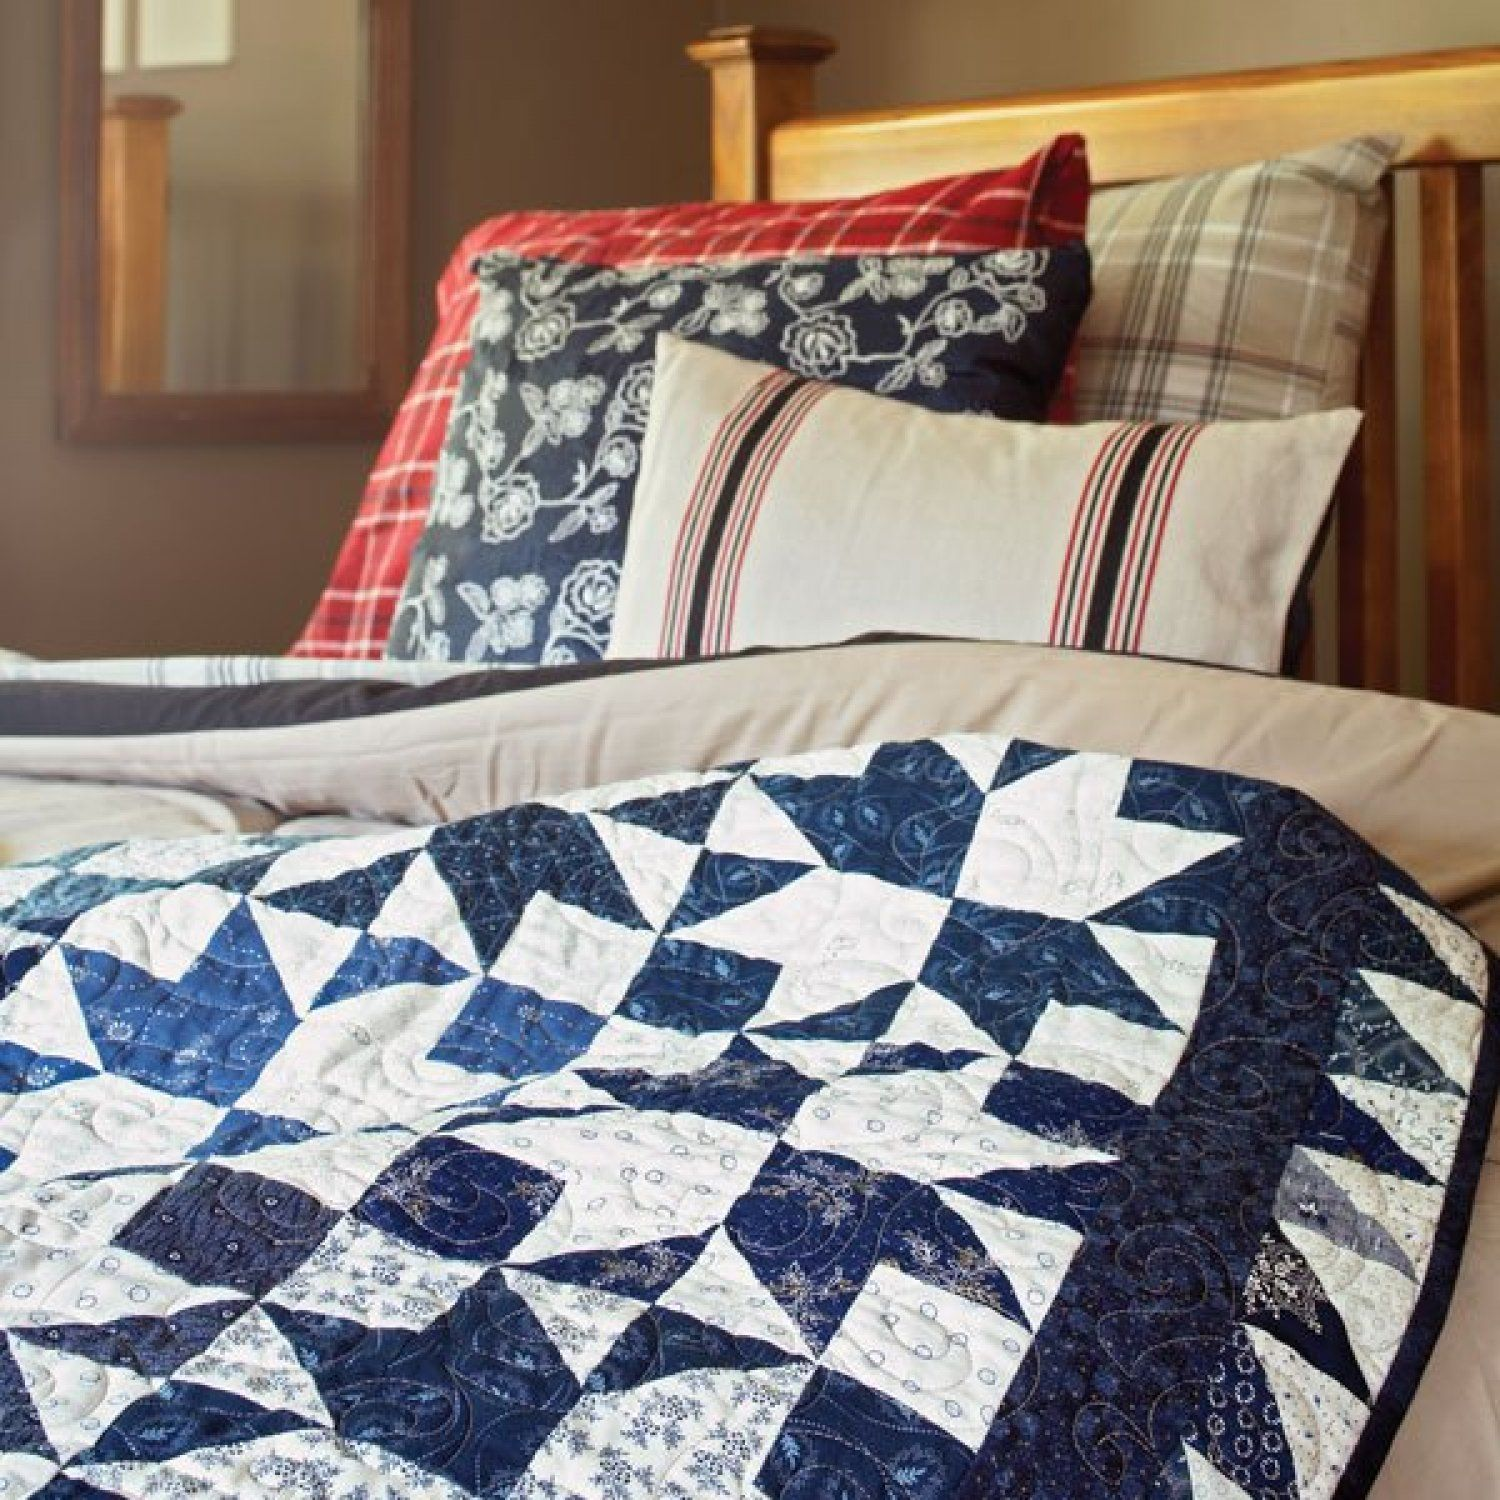 There's beauty in simplicity! Sew two-color quilts in both ... : two color quilts free patterns - Adamdwight.com